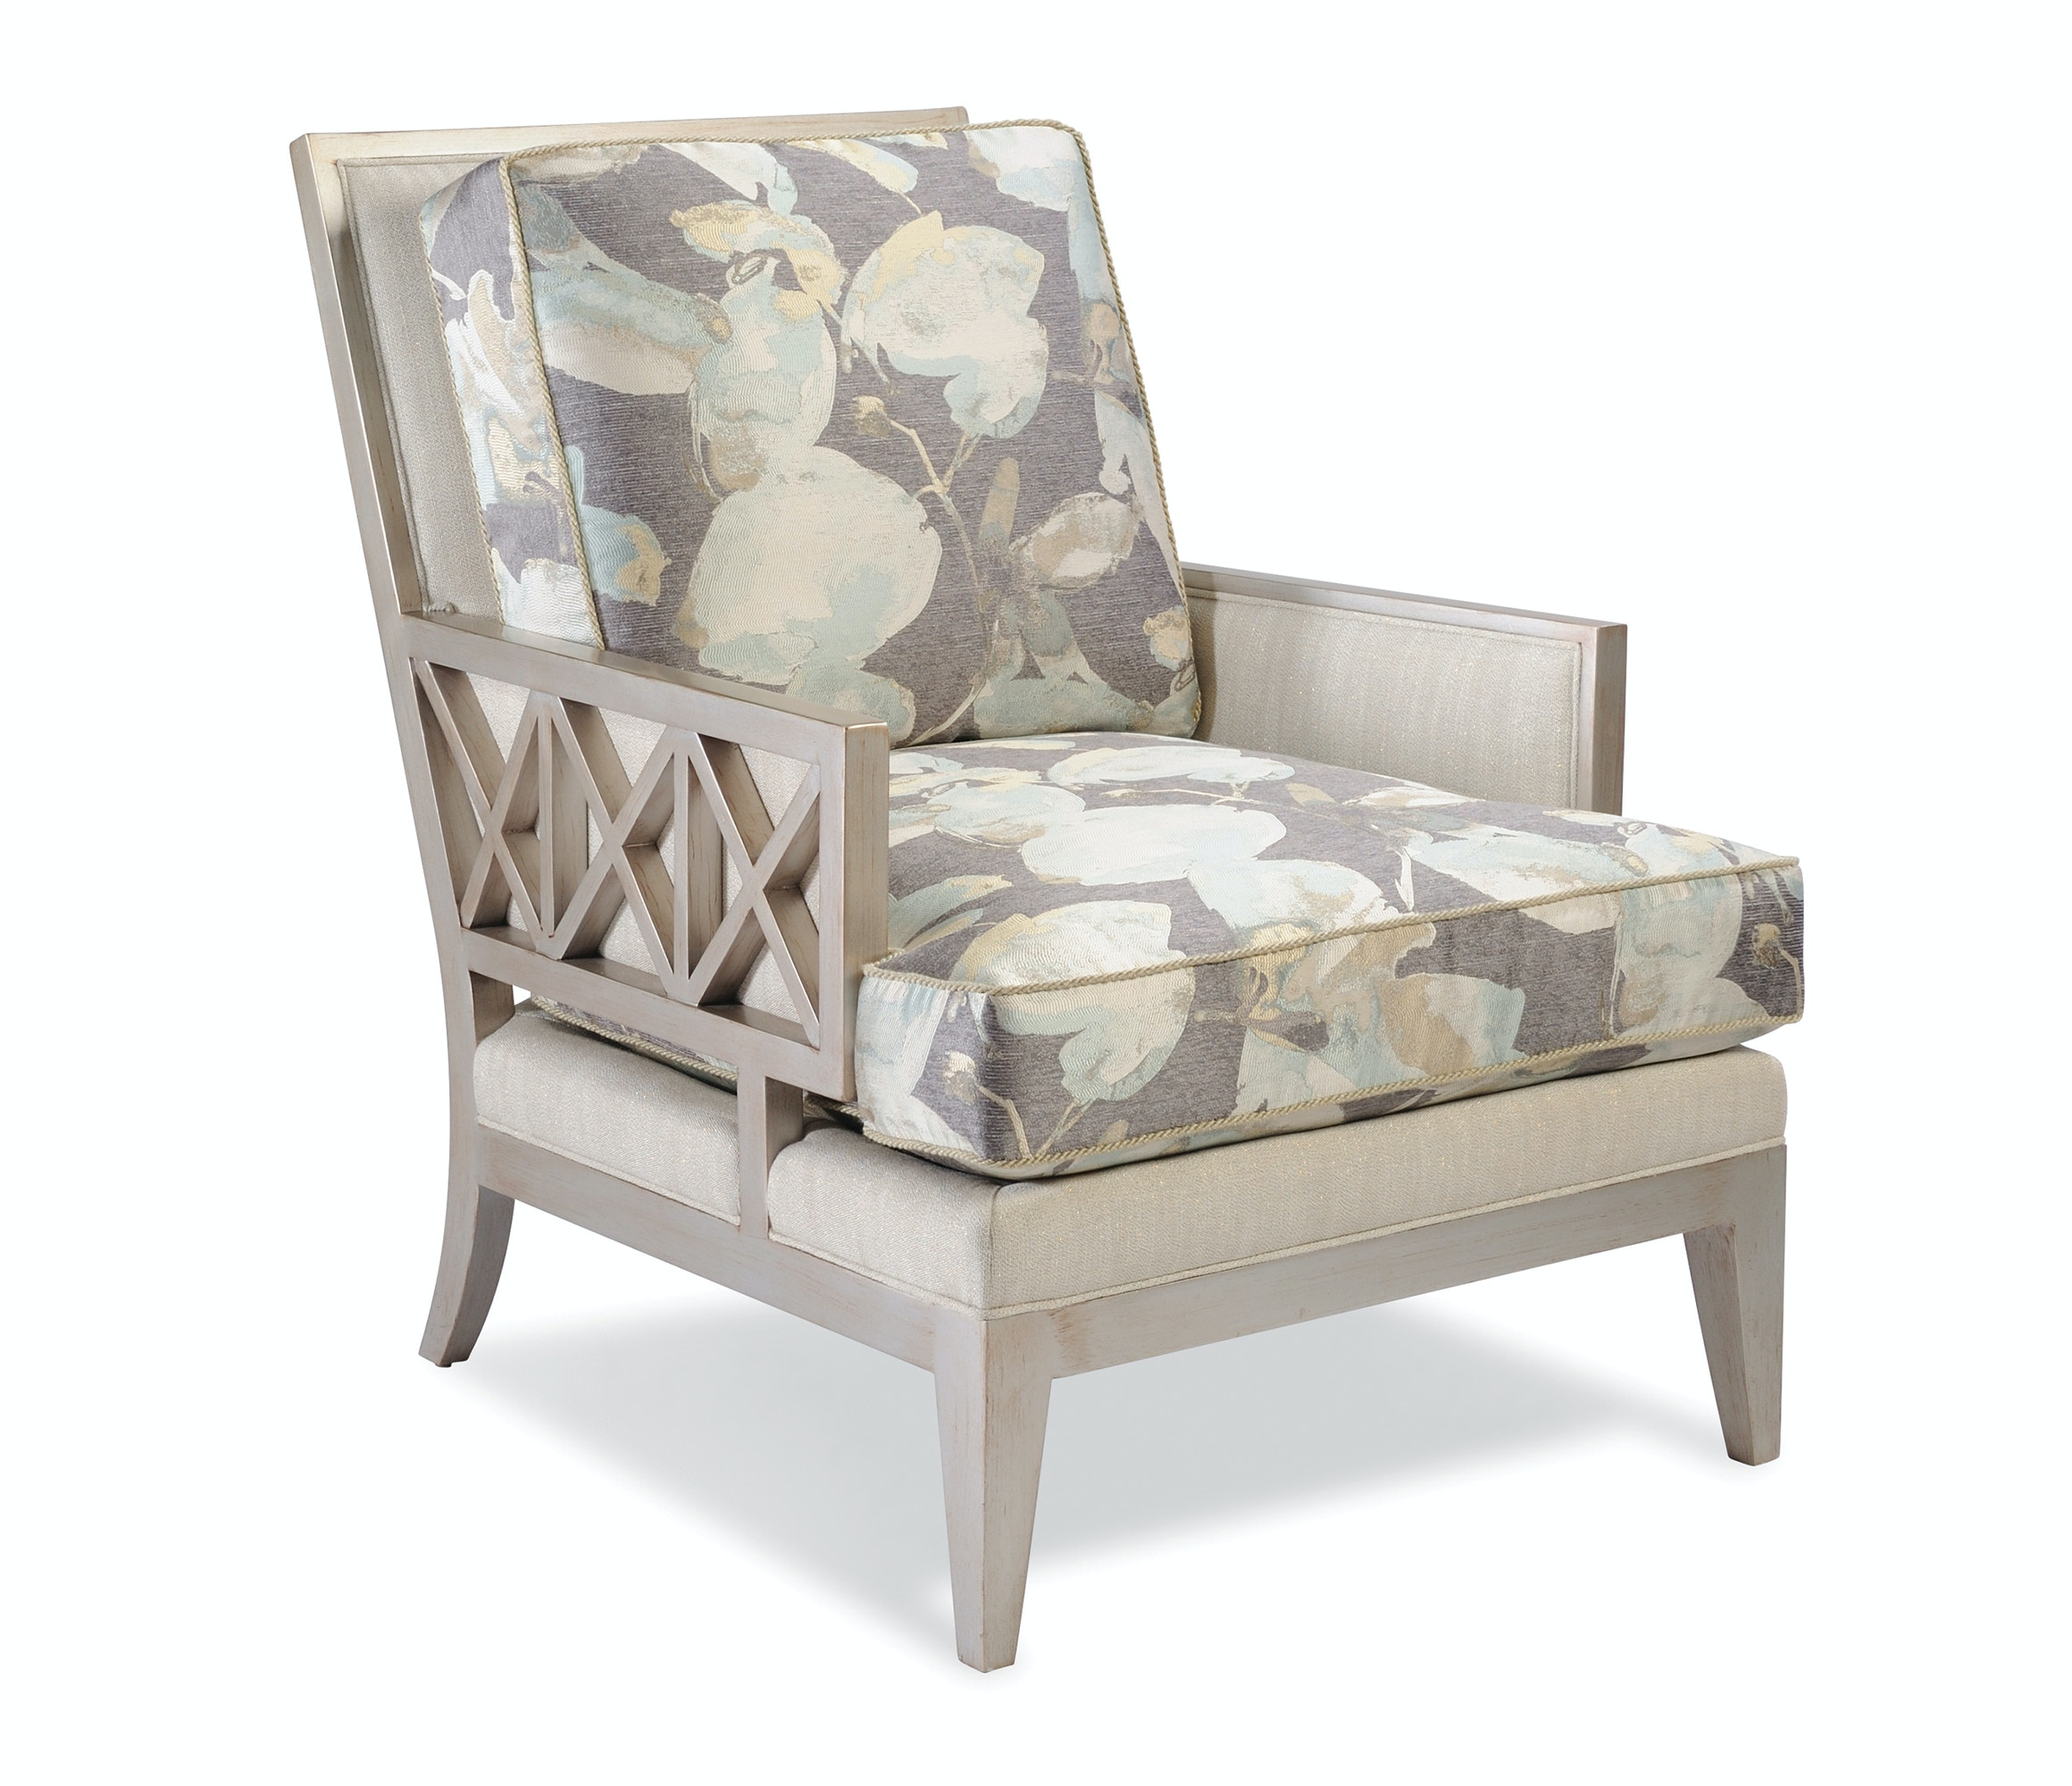 Taylor King Furniture Mahone Chair 7413 01